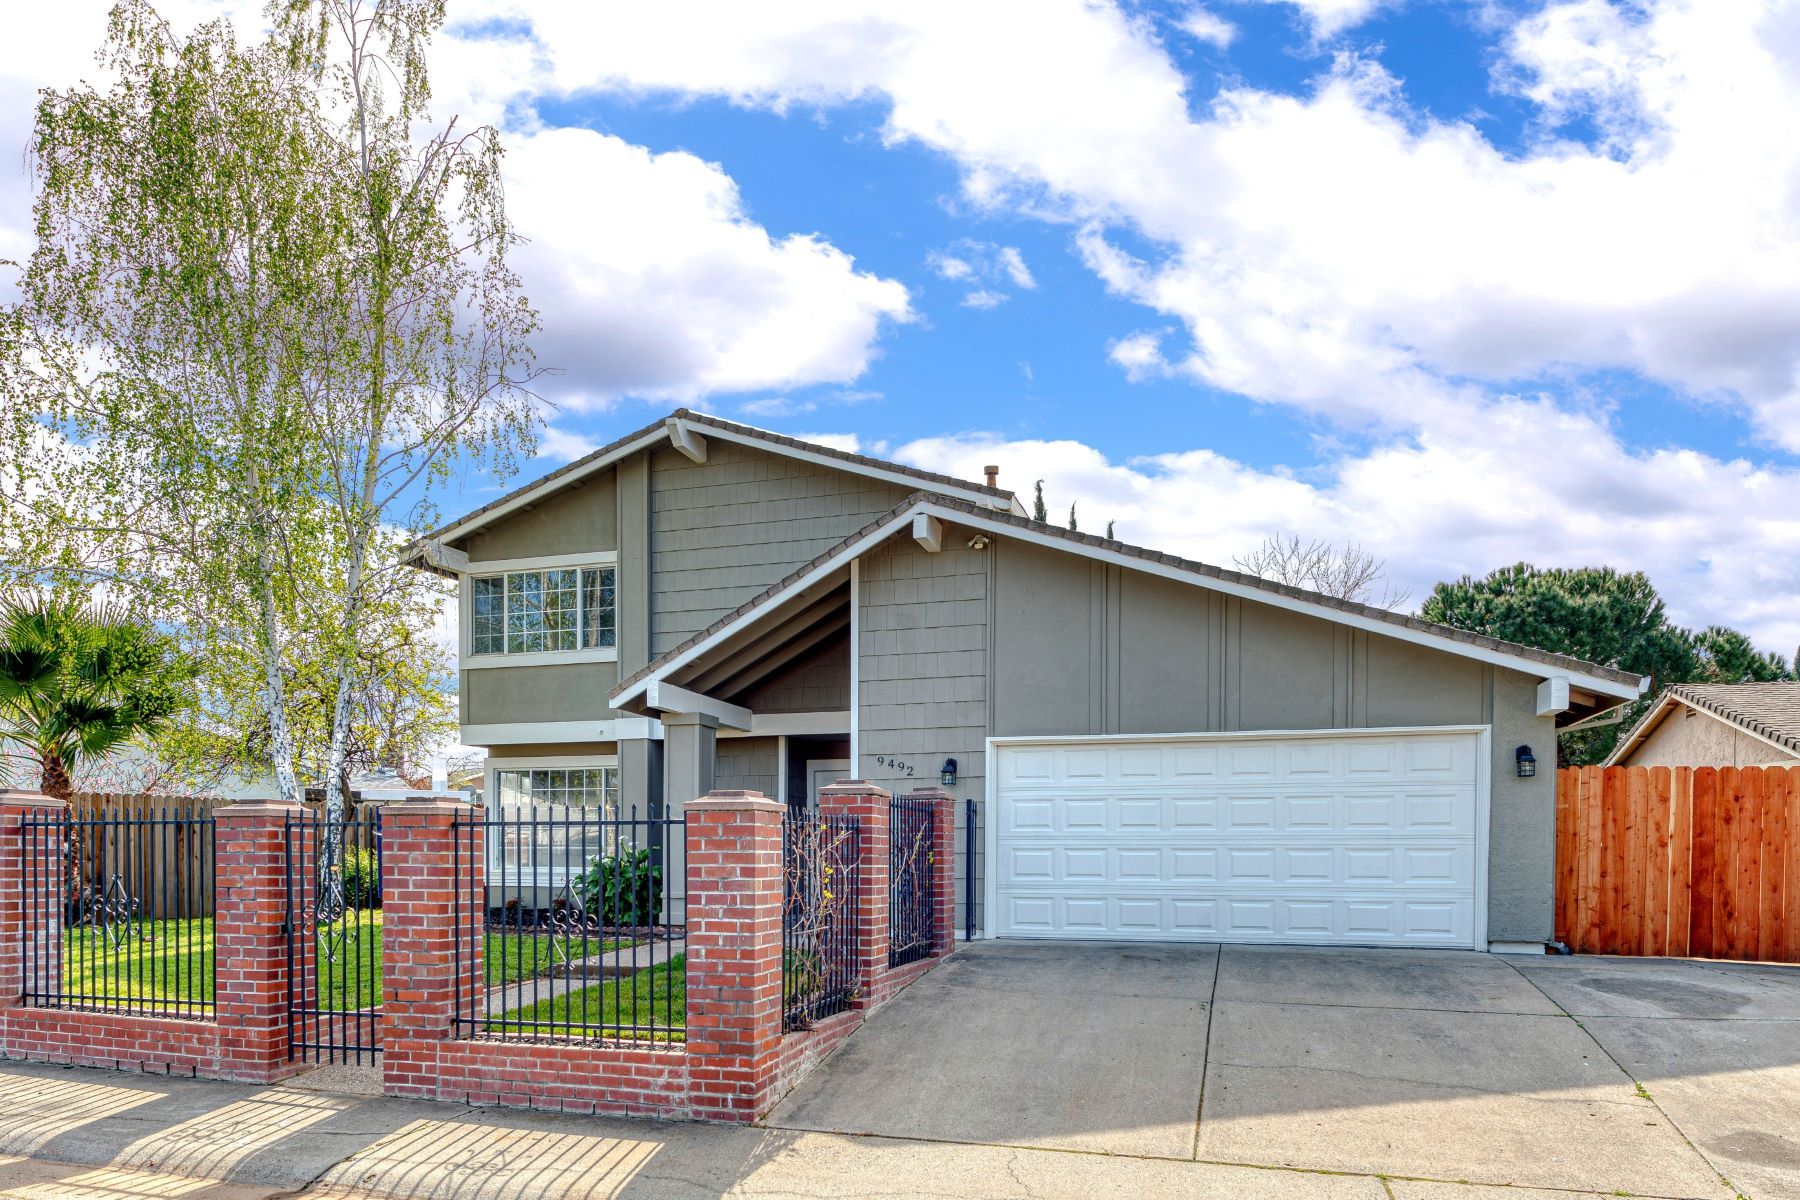 Single Family Homes for Sale at 9492 Roseport Way, Sacramento, CA 95826 9492 Roseport Way Sacramento, California 95826 United States